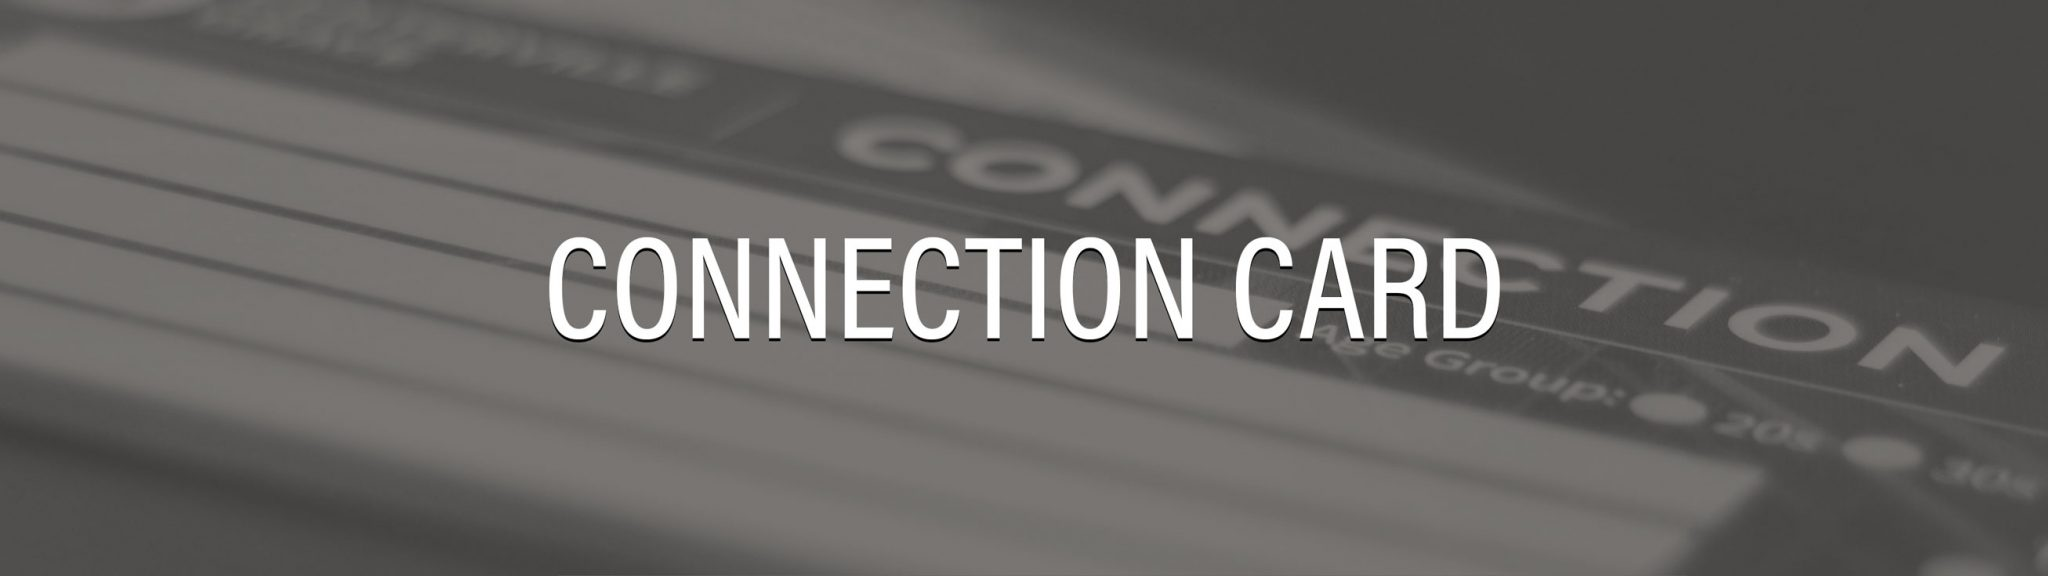 connection-card